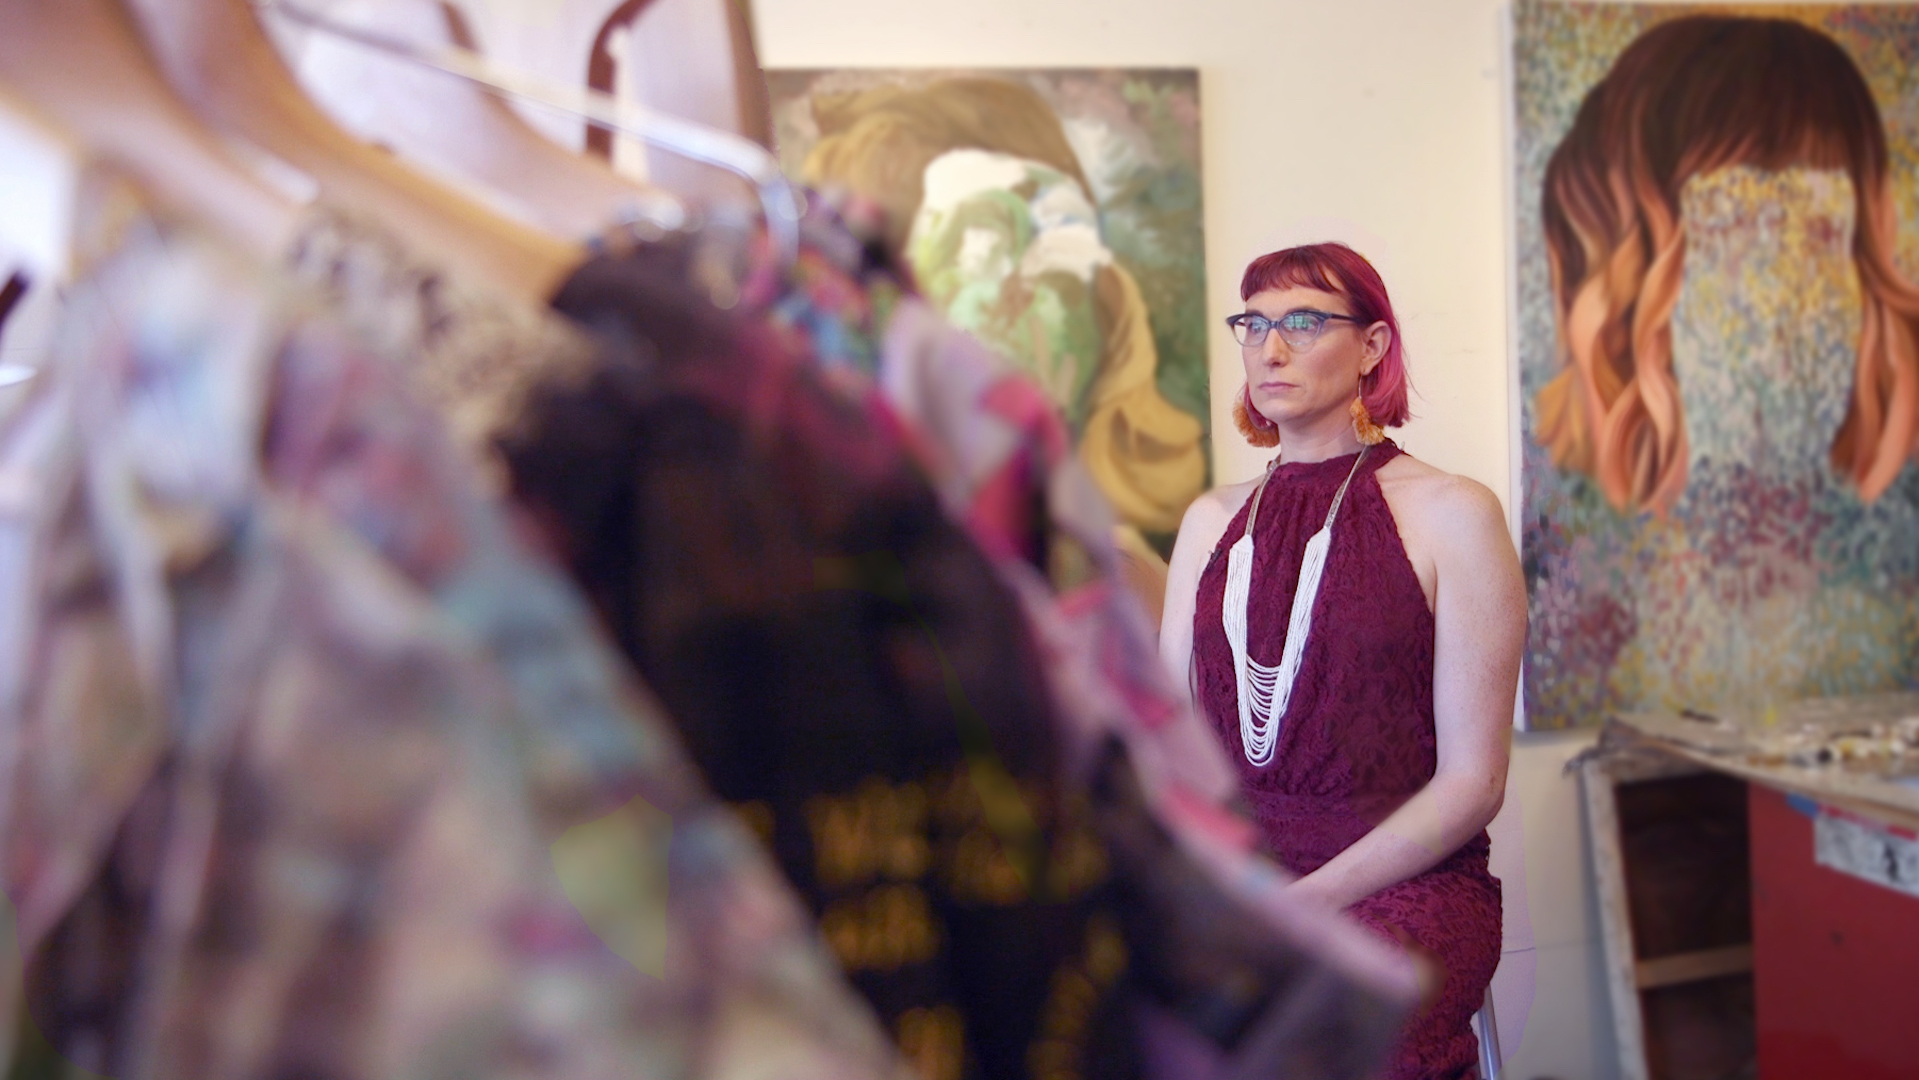 Seattle artist Jono Vaughan in her studio with dresses created for Project 42.